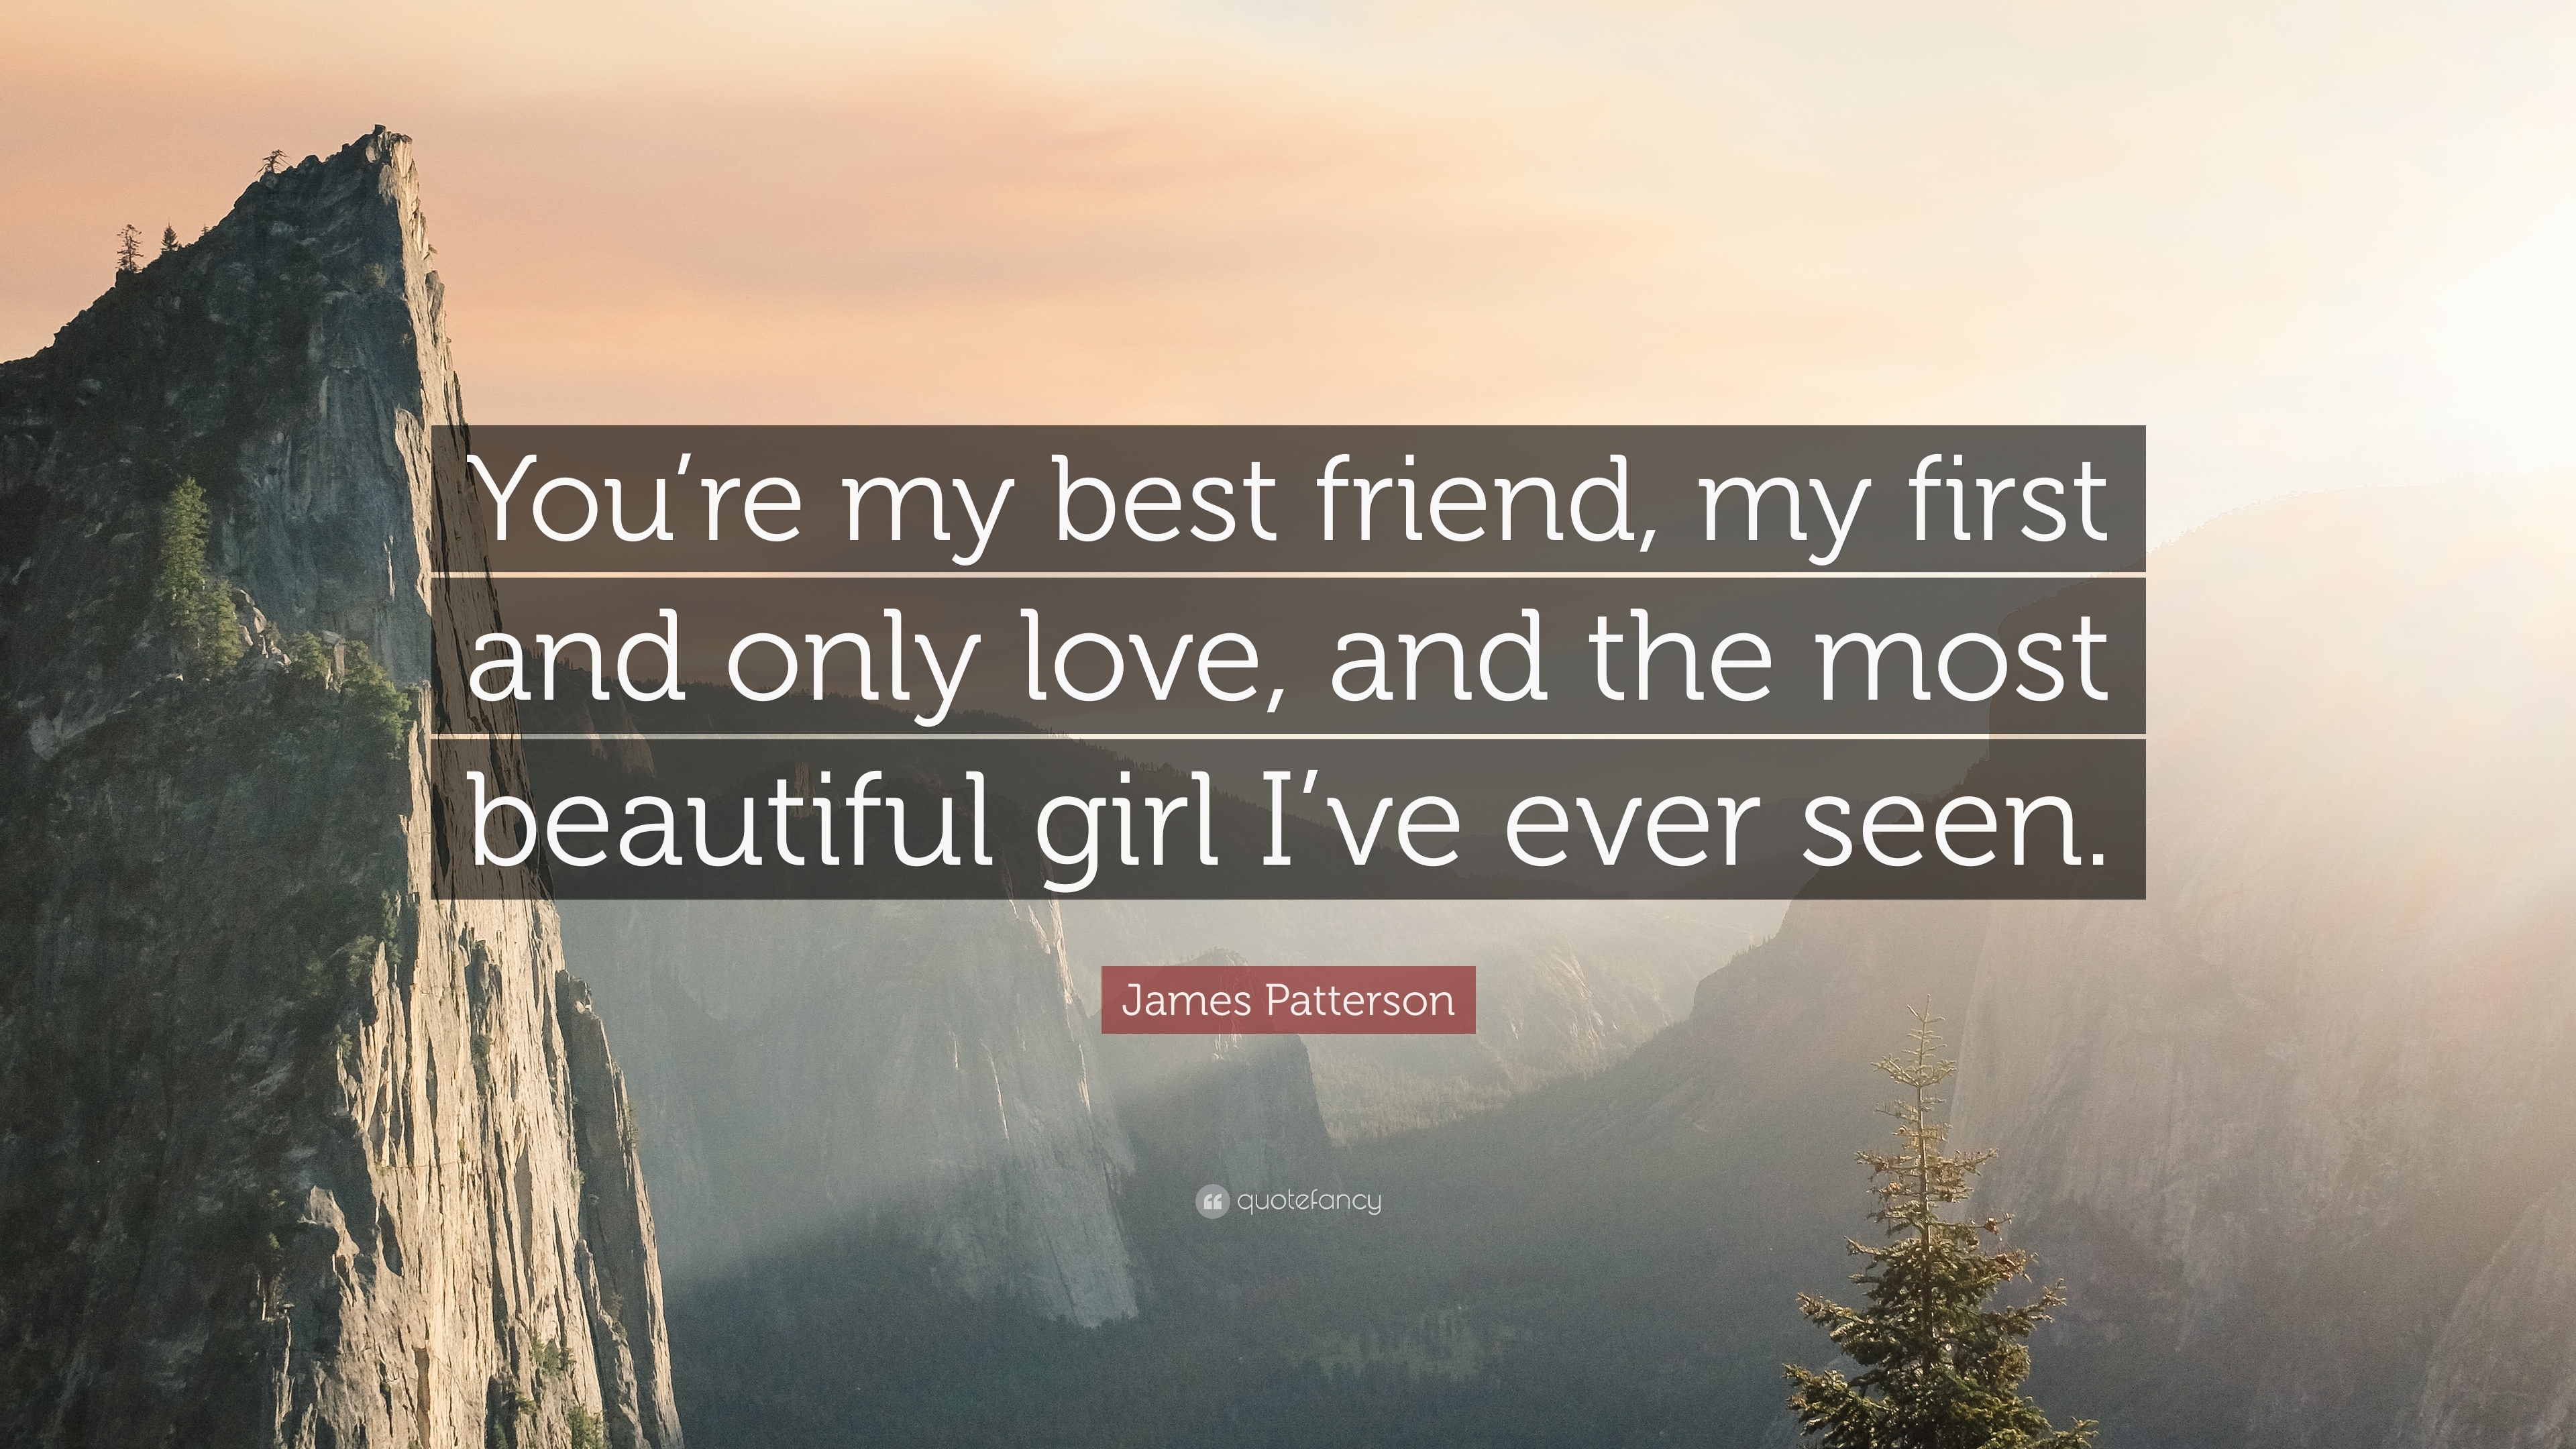 Your my bestfriend and i love you quotes